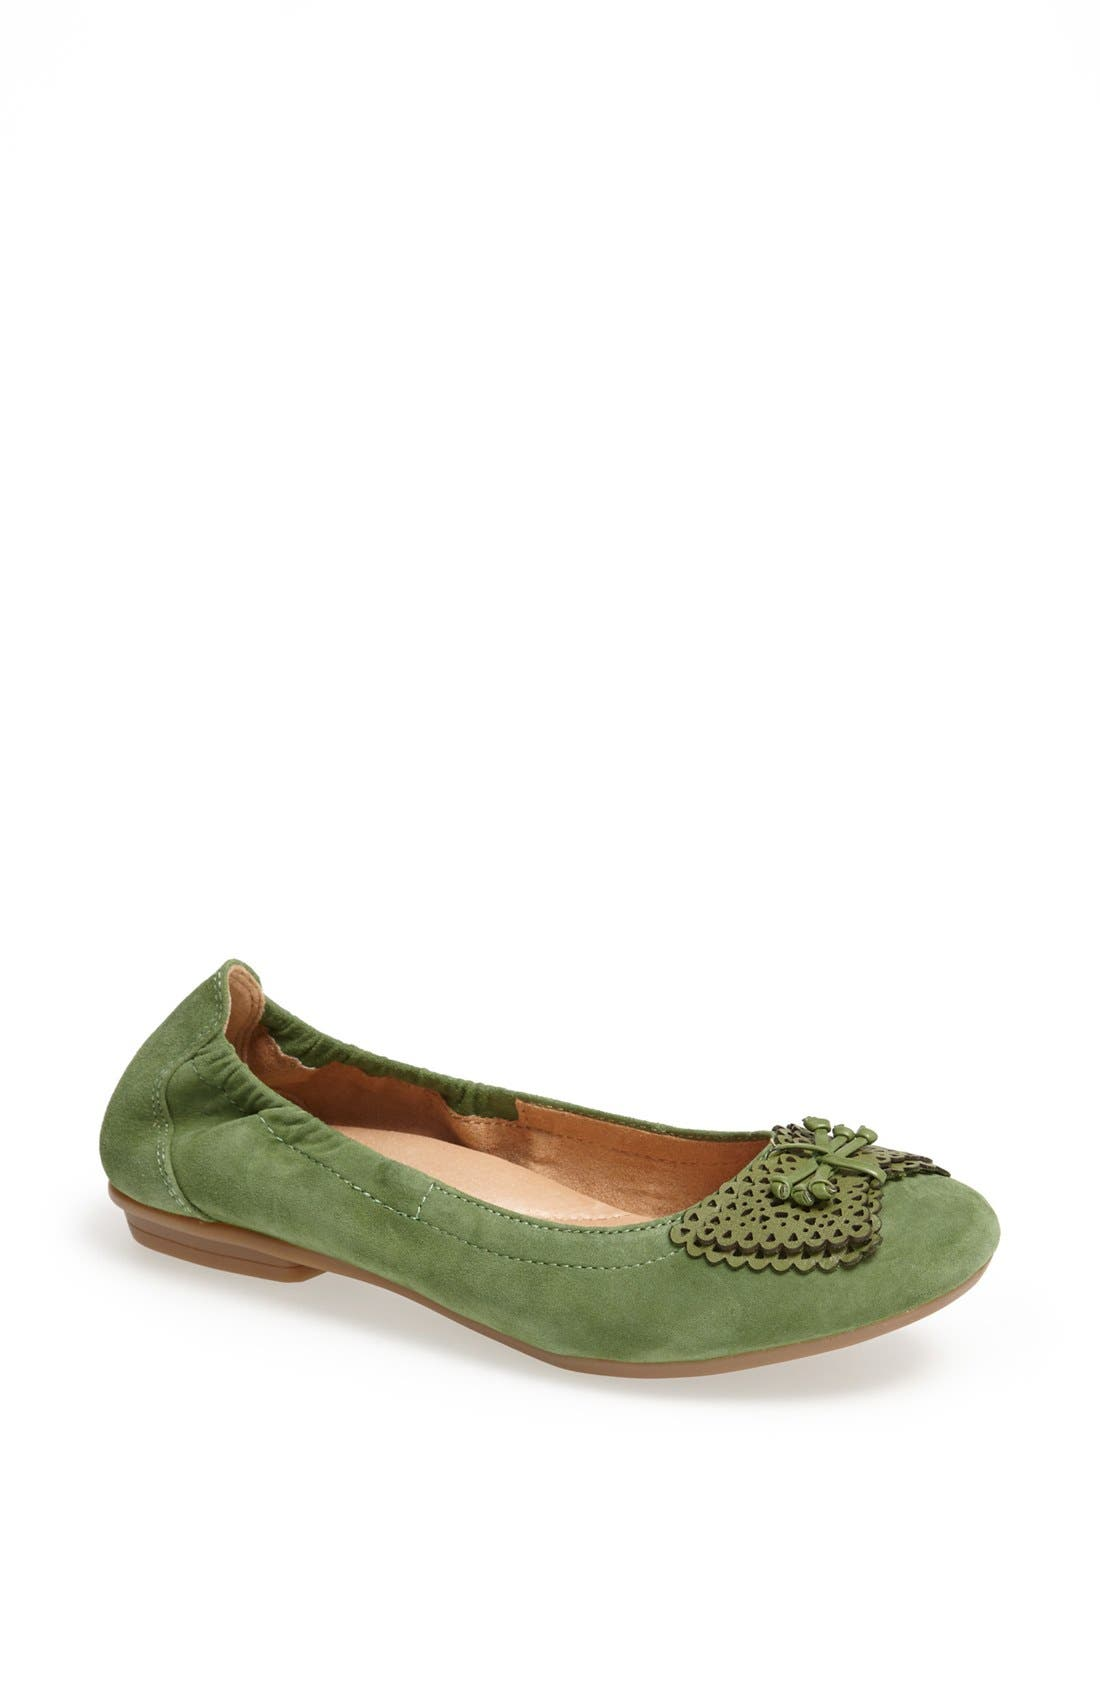 Main Image - Earth 'Butterfly' Suede Flat